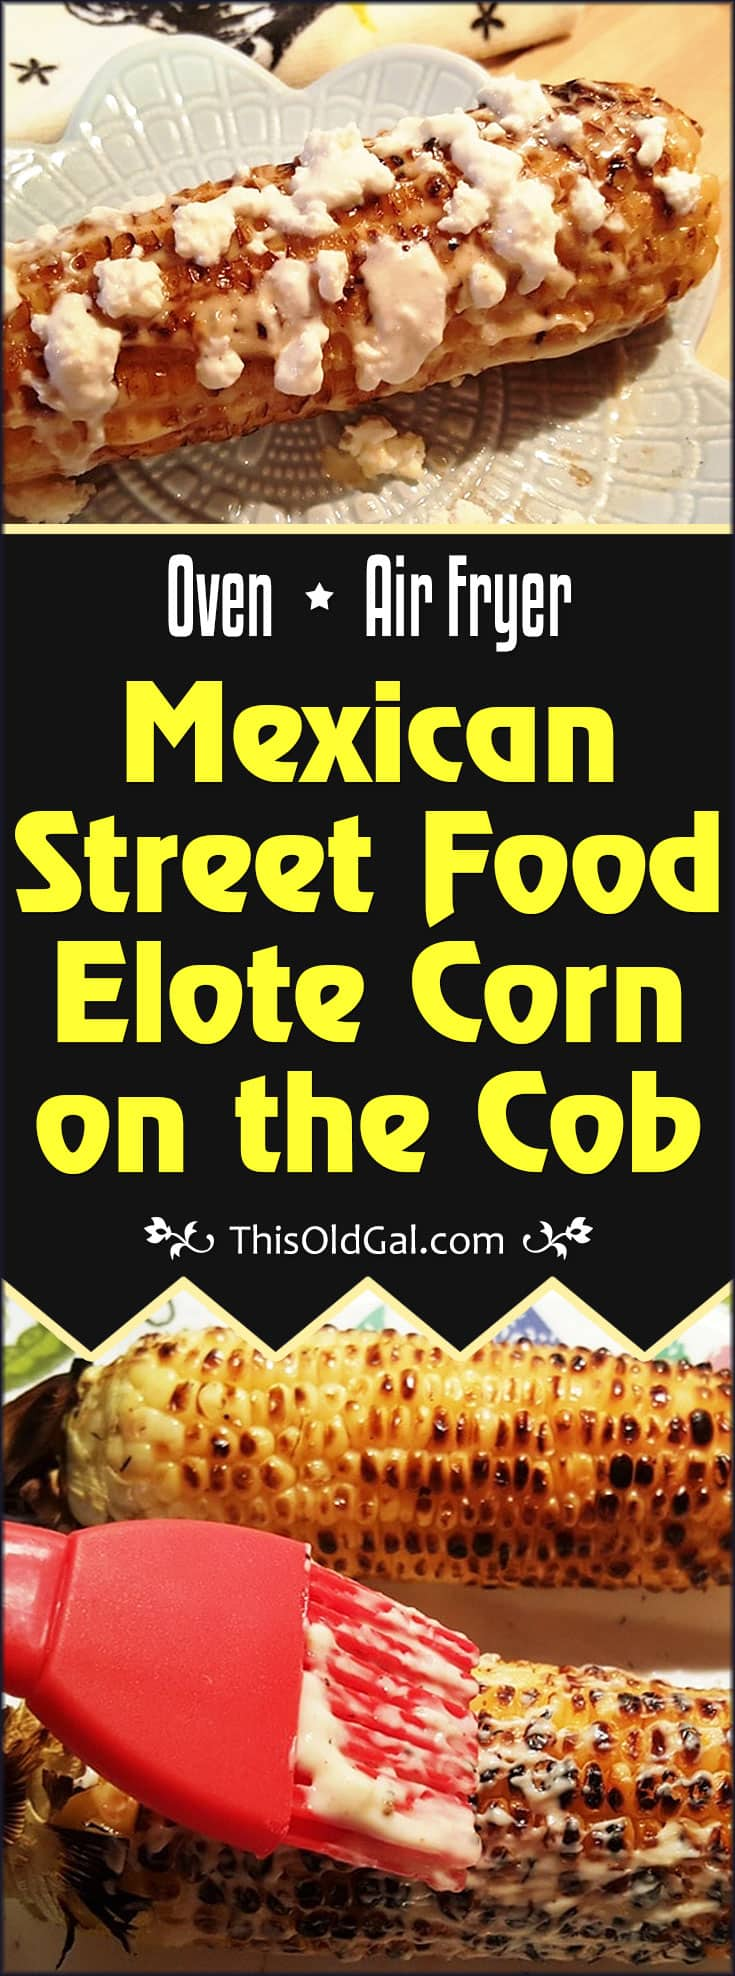 Mexican Street Food Elote Corn on the Cob (Oven/Air Fryer Version)